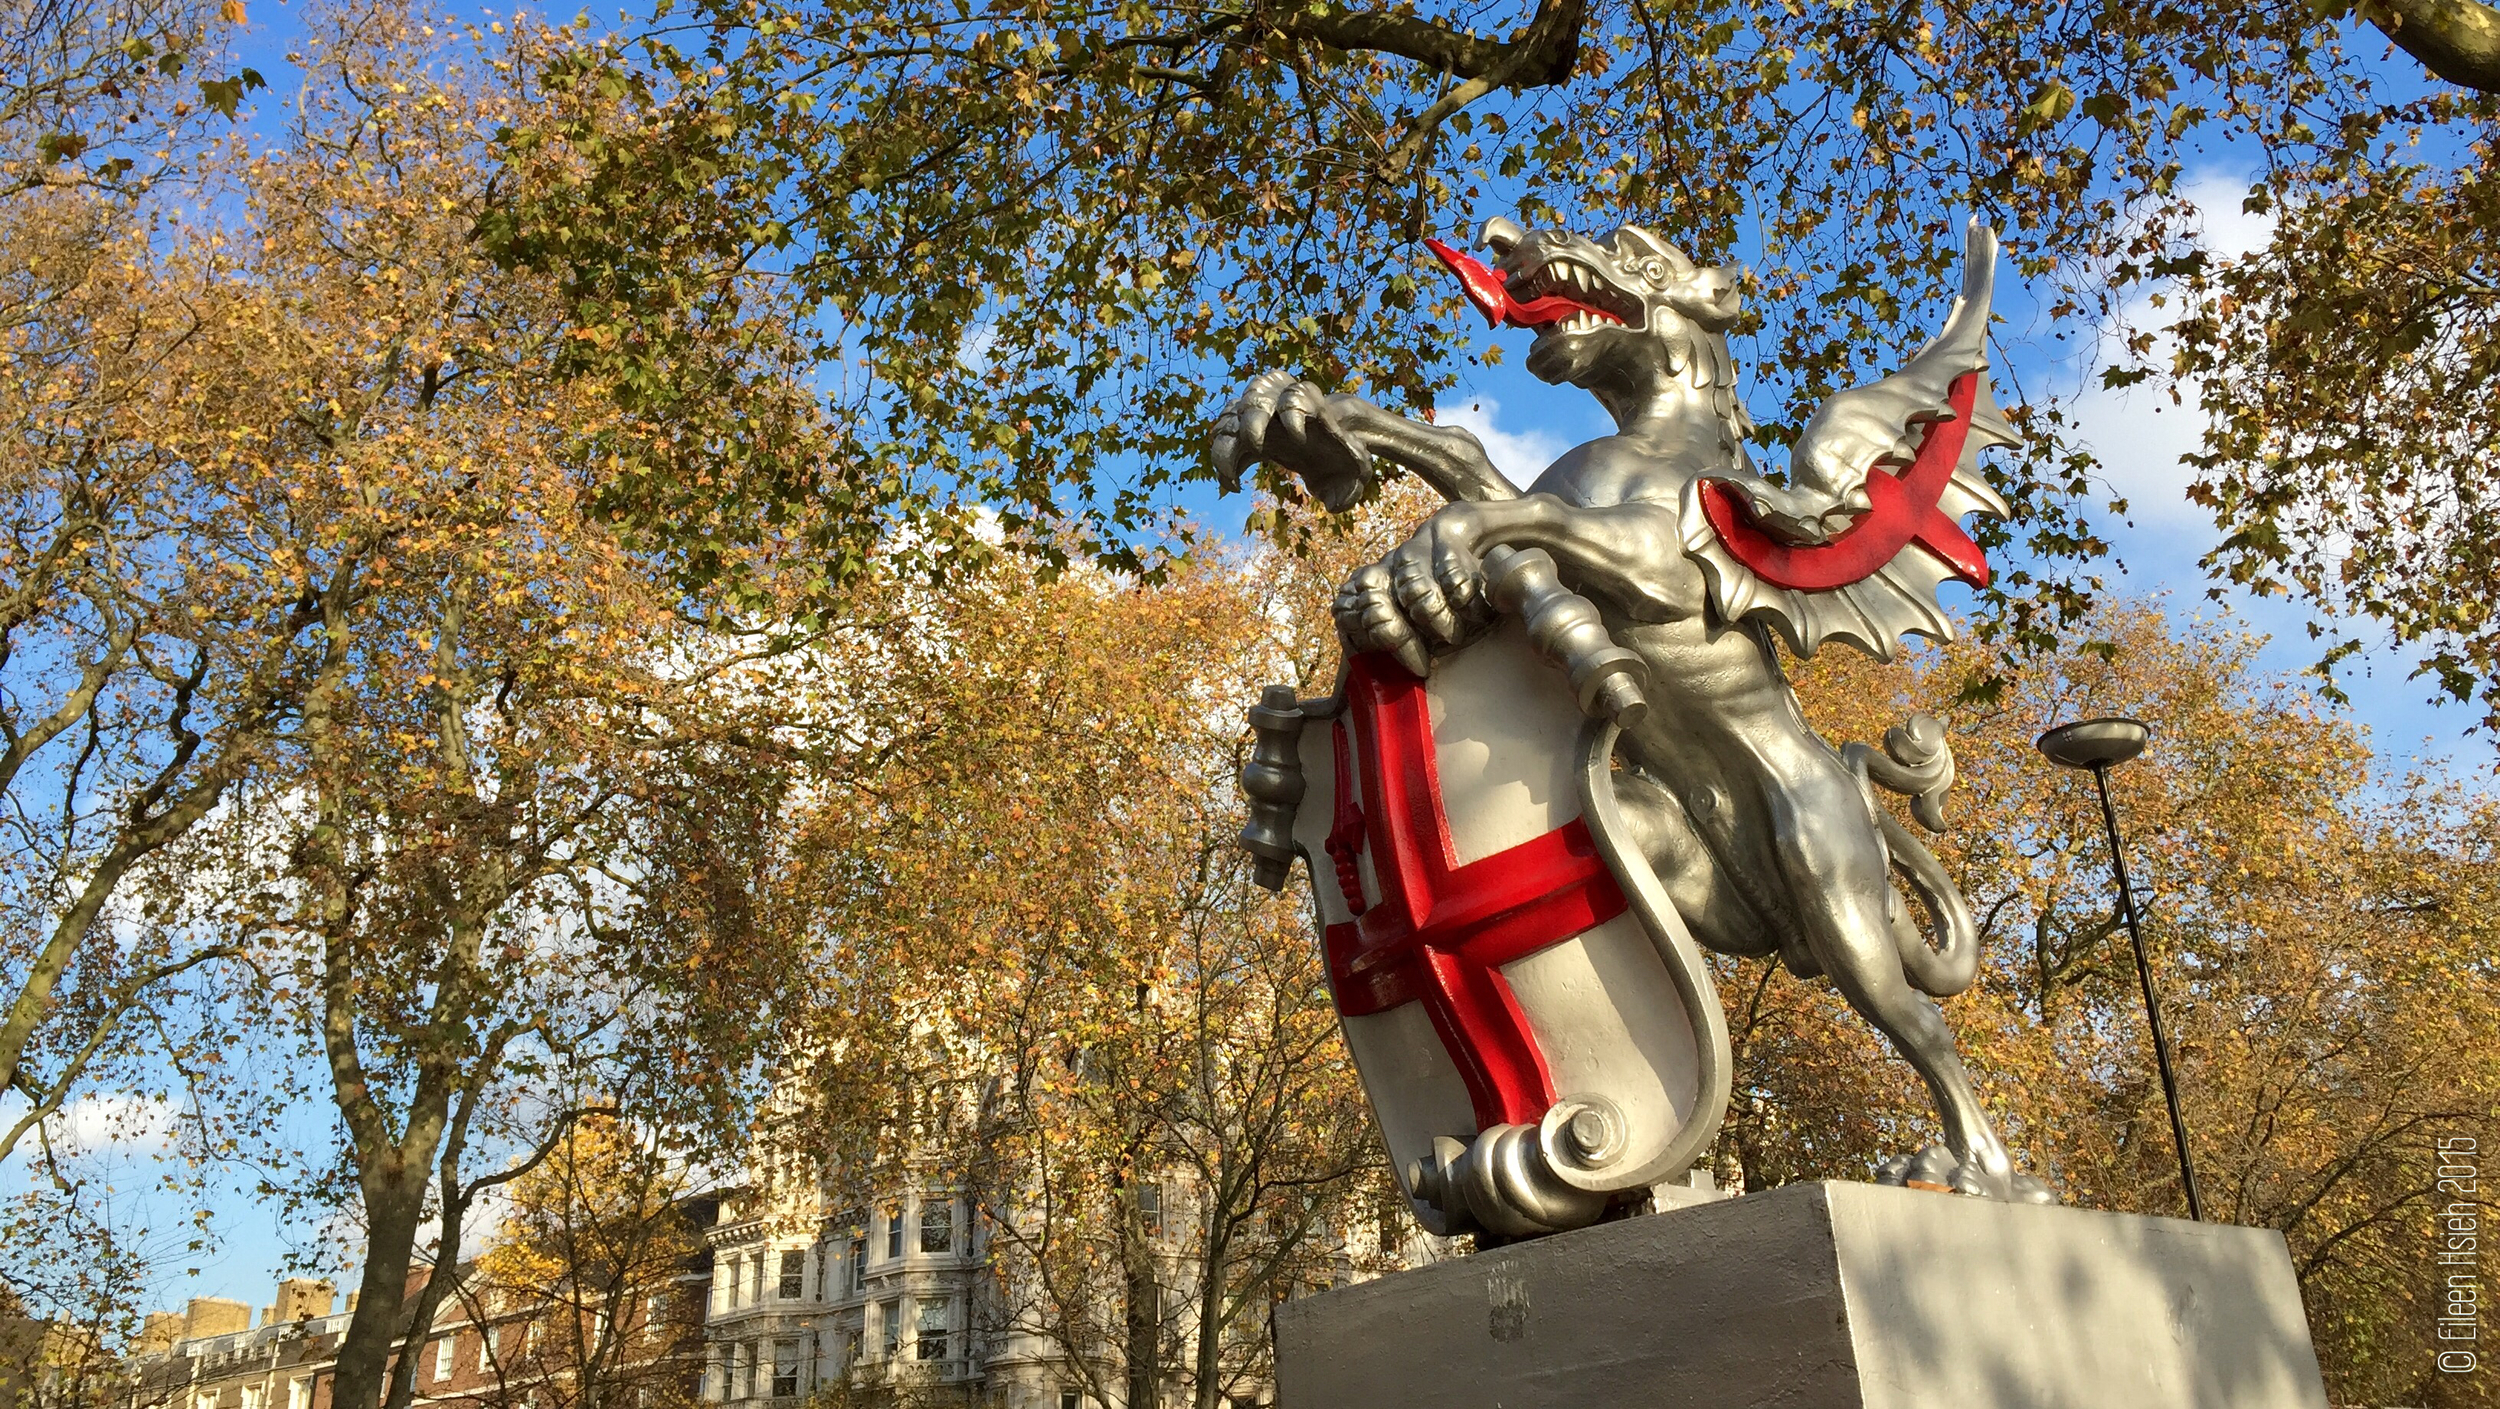 A dragon statue used to mark the boundaries of the City of London.© Eileen Hsieh